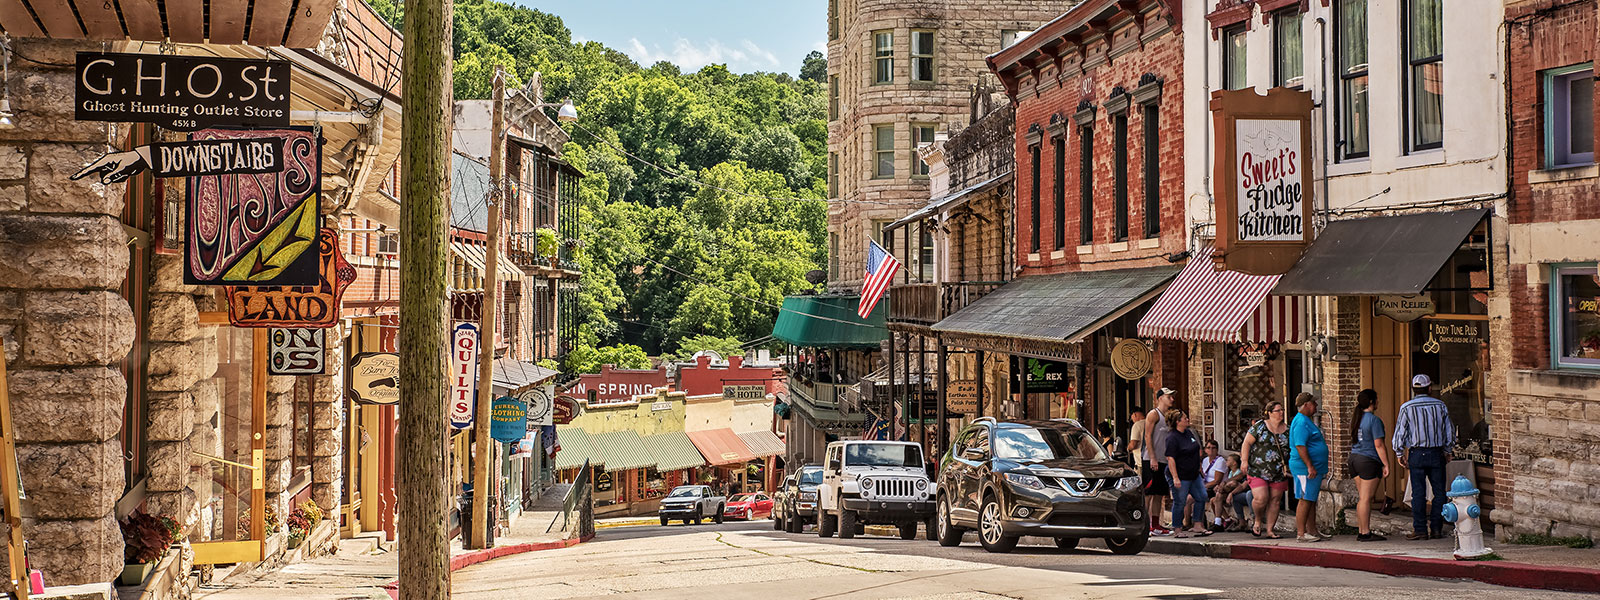 The Best Things to do in Eureka Springs are in Downtown Eureka Springs